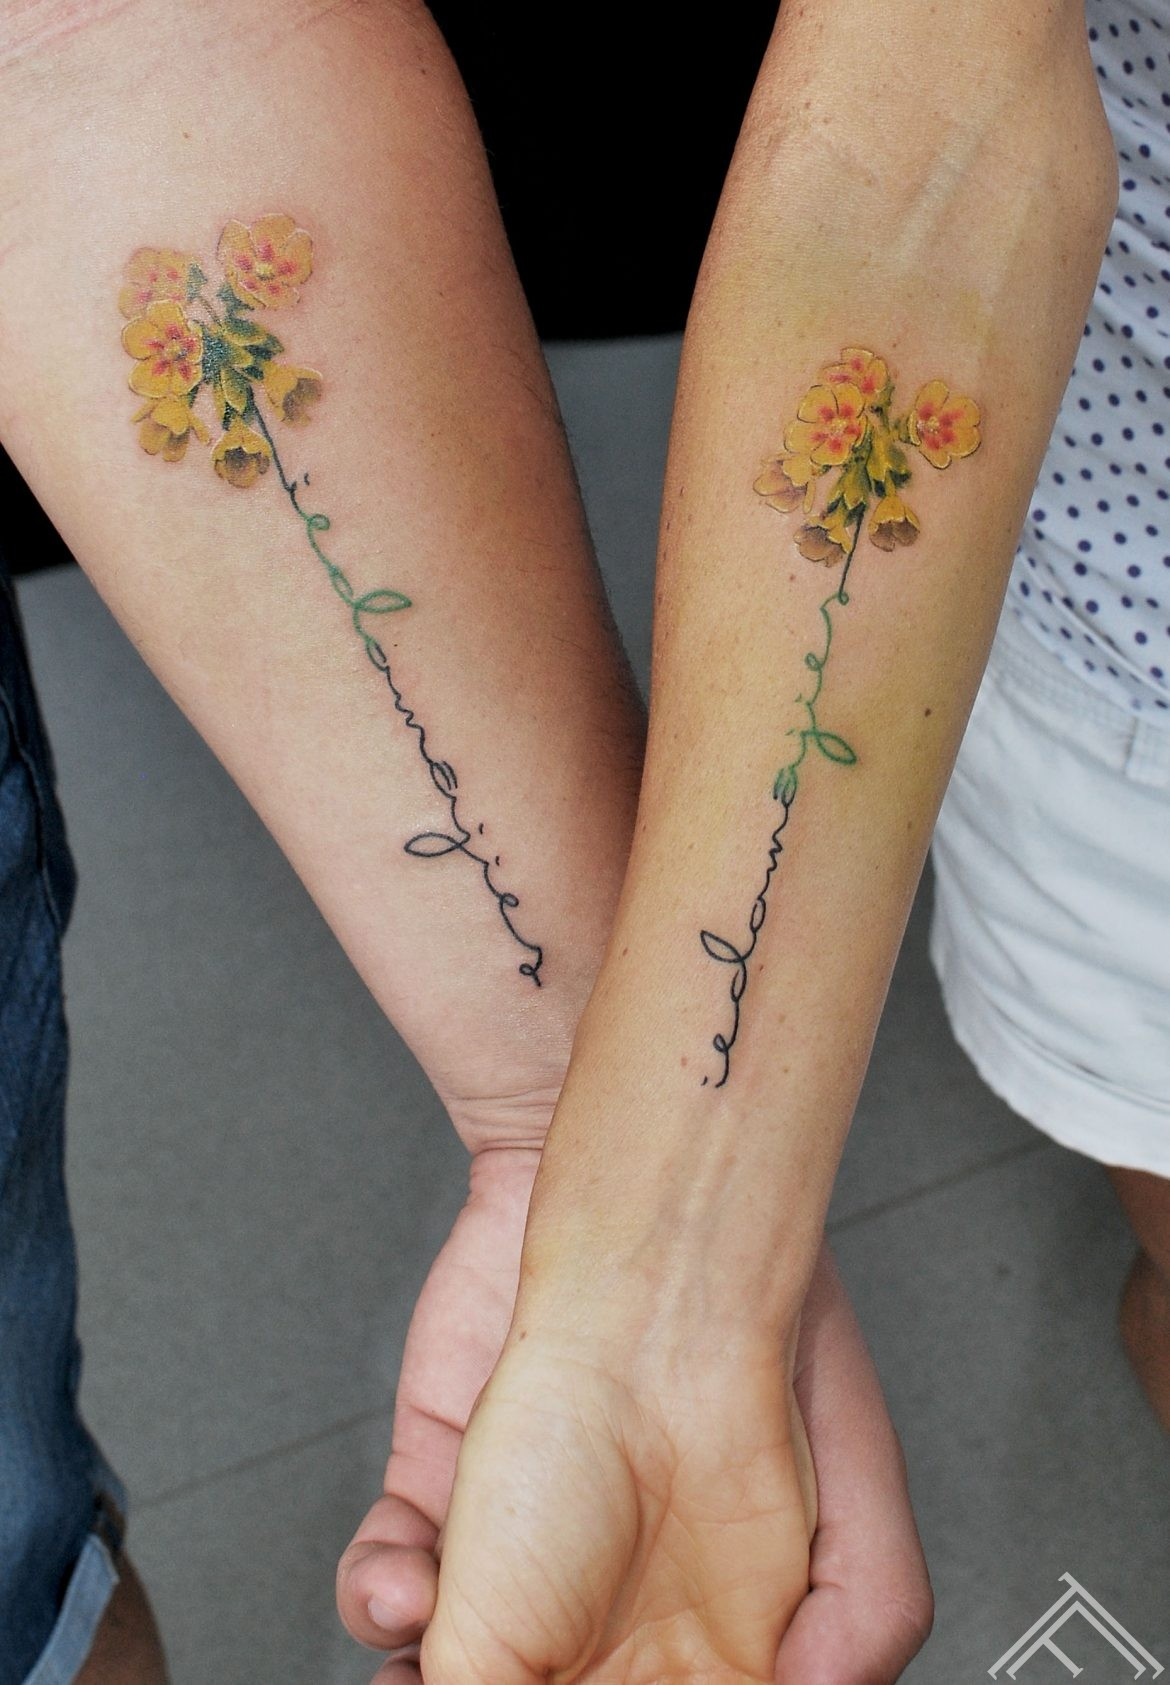 janisanderson-tattoo-flowers-riga-art